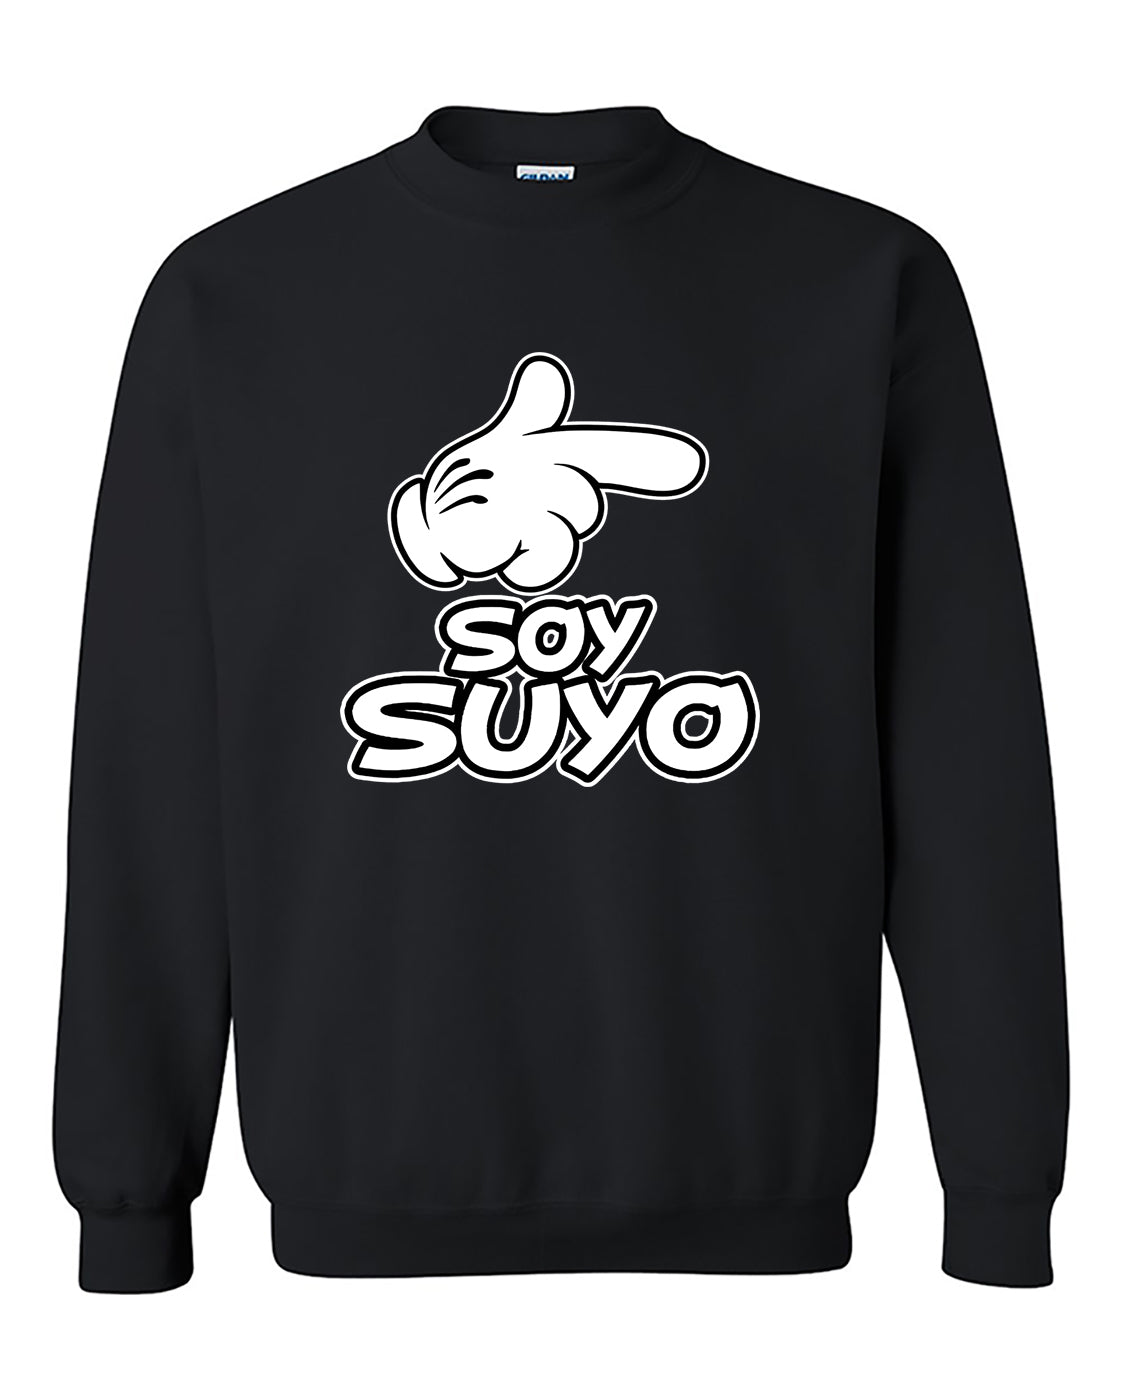 Soy Suyo El Es mio Couples Valentine's Day Gift Crewneck Sweater